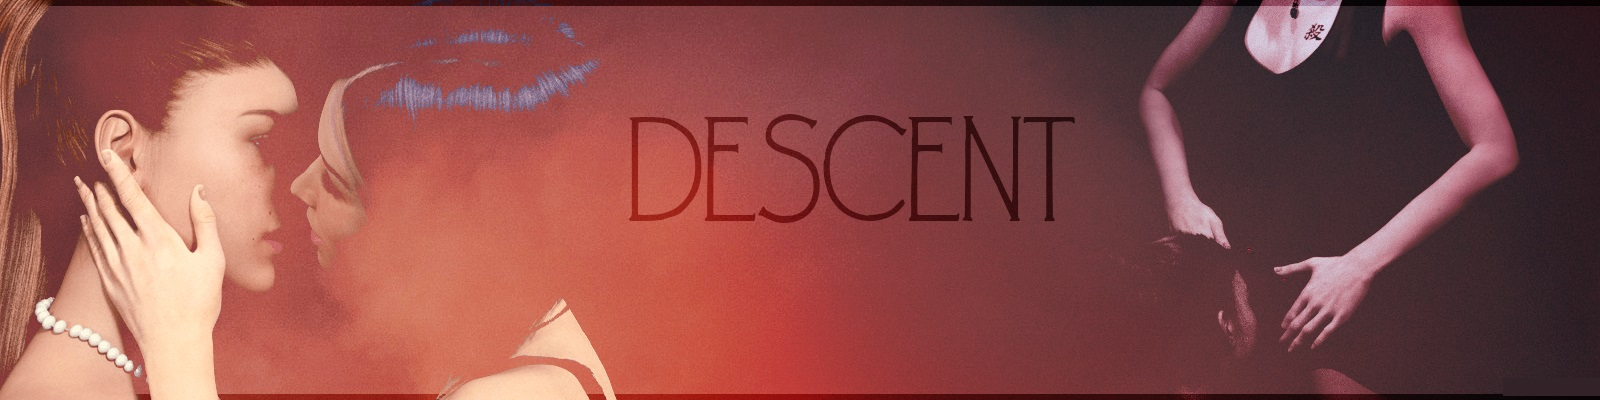 Descent – Final Version 1.0 - Full Game